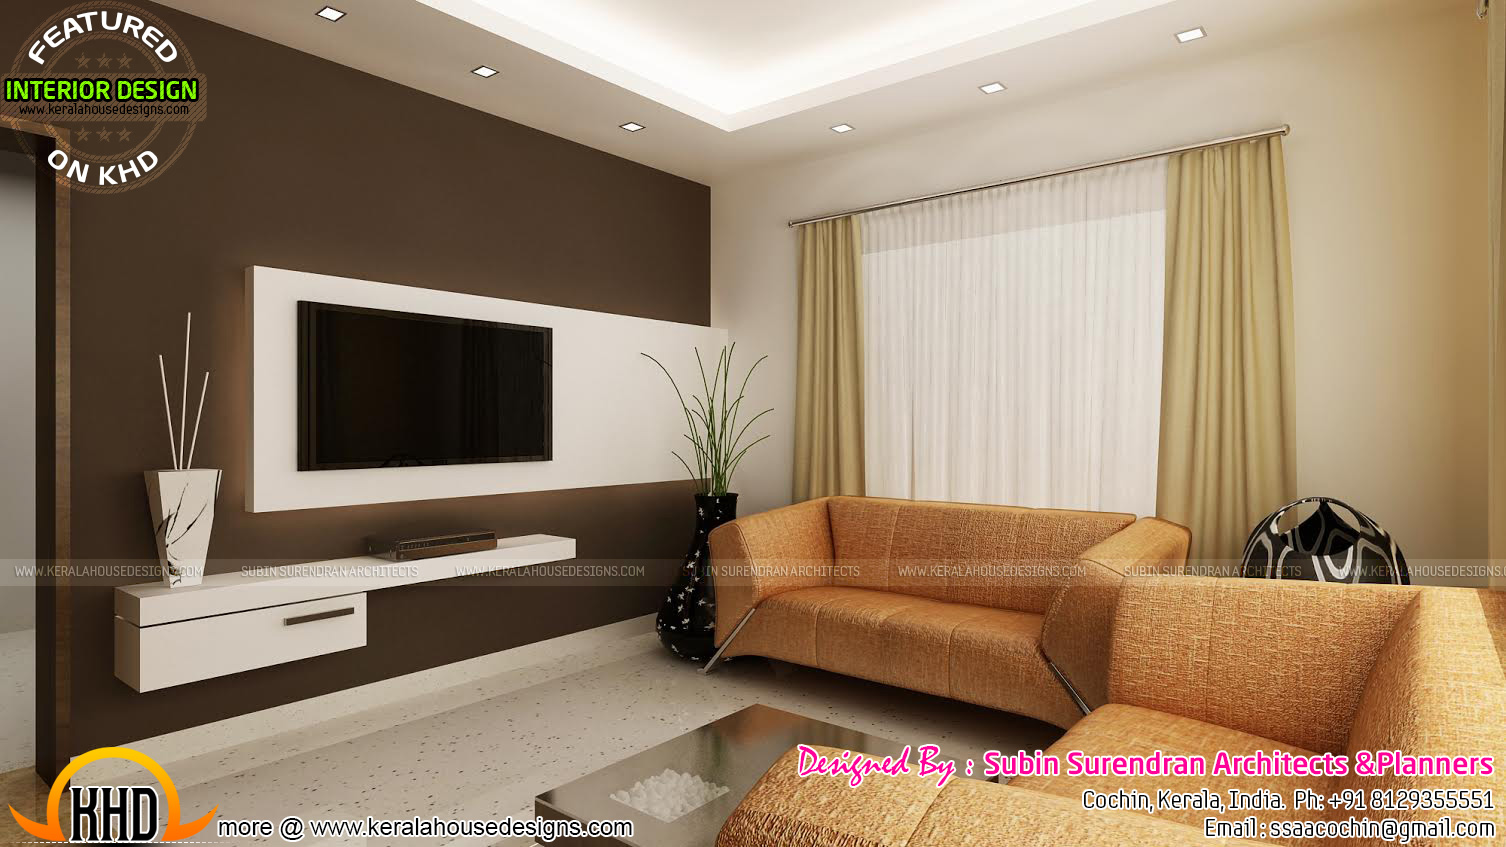 attic remodel plans - Living rooms modern kitchen interiors in Kerala Kerala